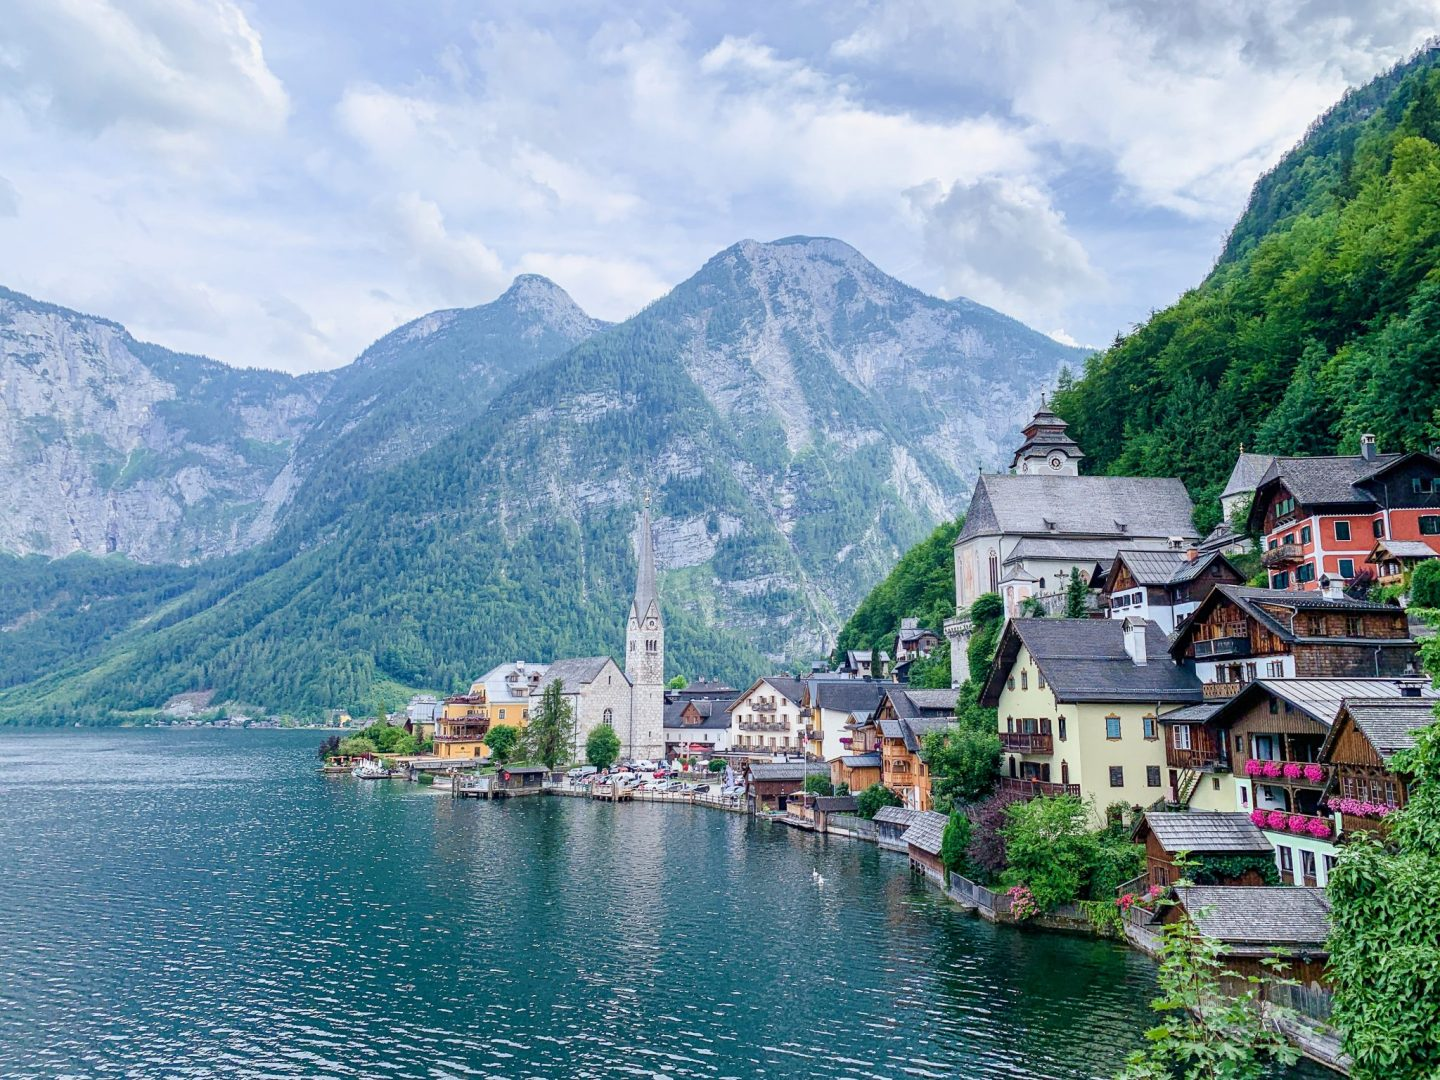 Hallstatt - Two Week Austria and Southern Germany Road Trip